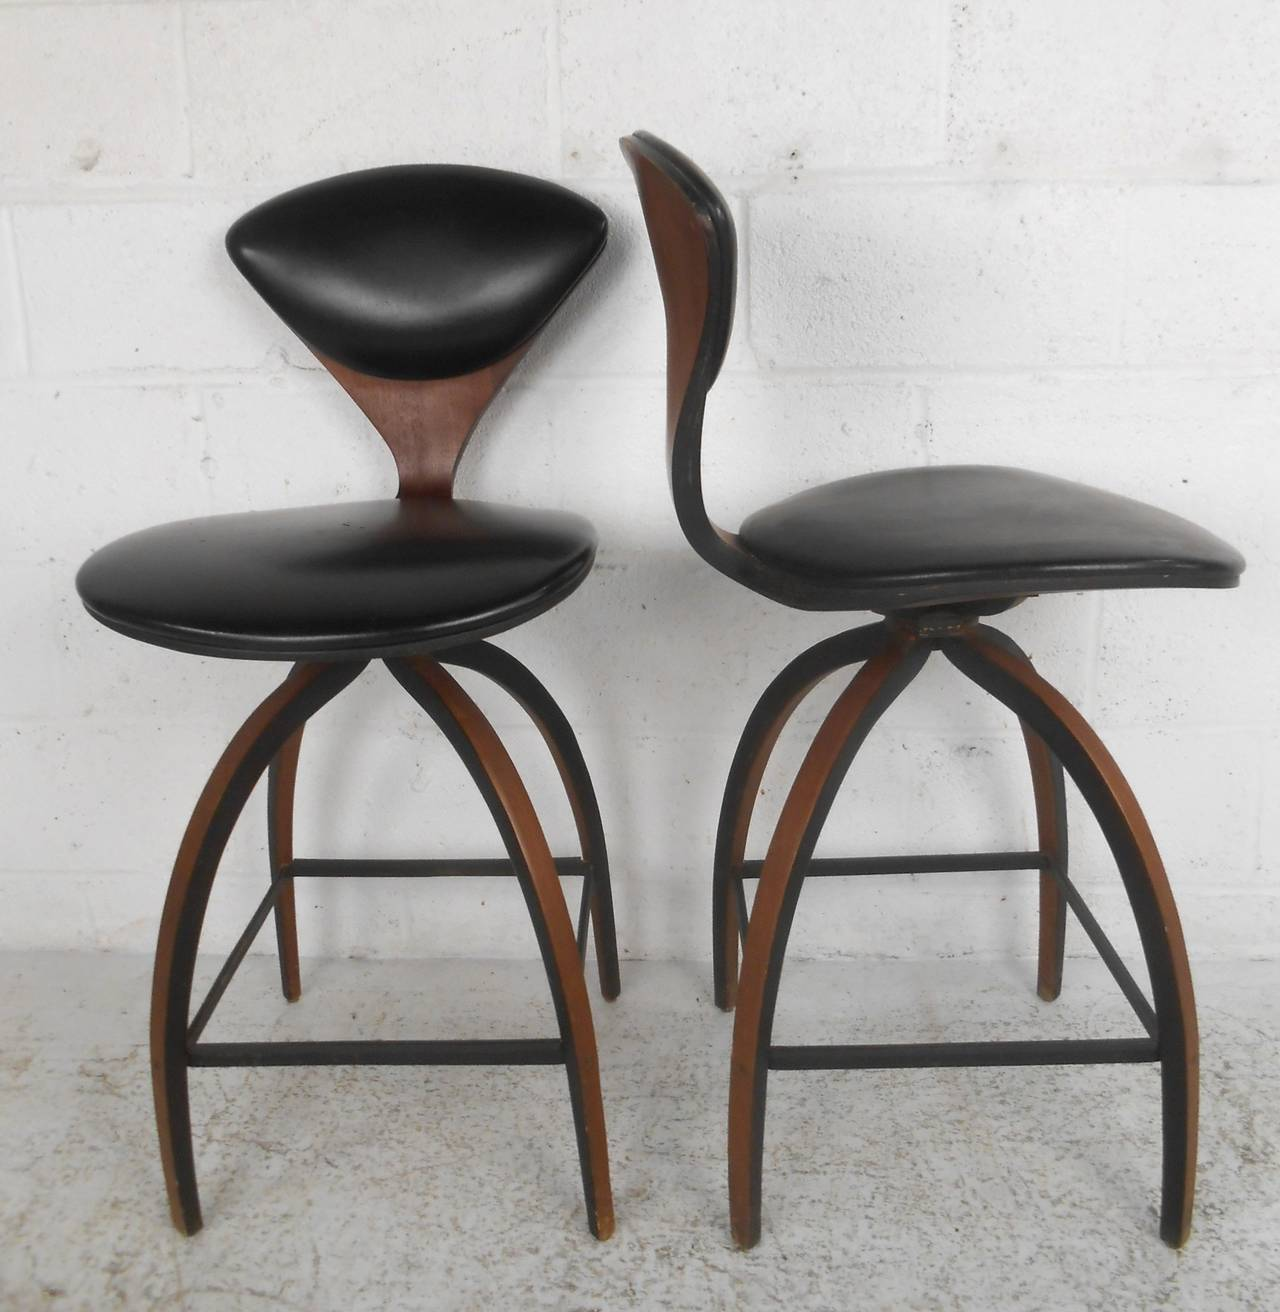 pair of midcentury modern plycraft bar stools by norman cherner  - pair of midcentury modern plycraft bar stools by norman cherner